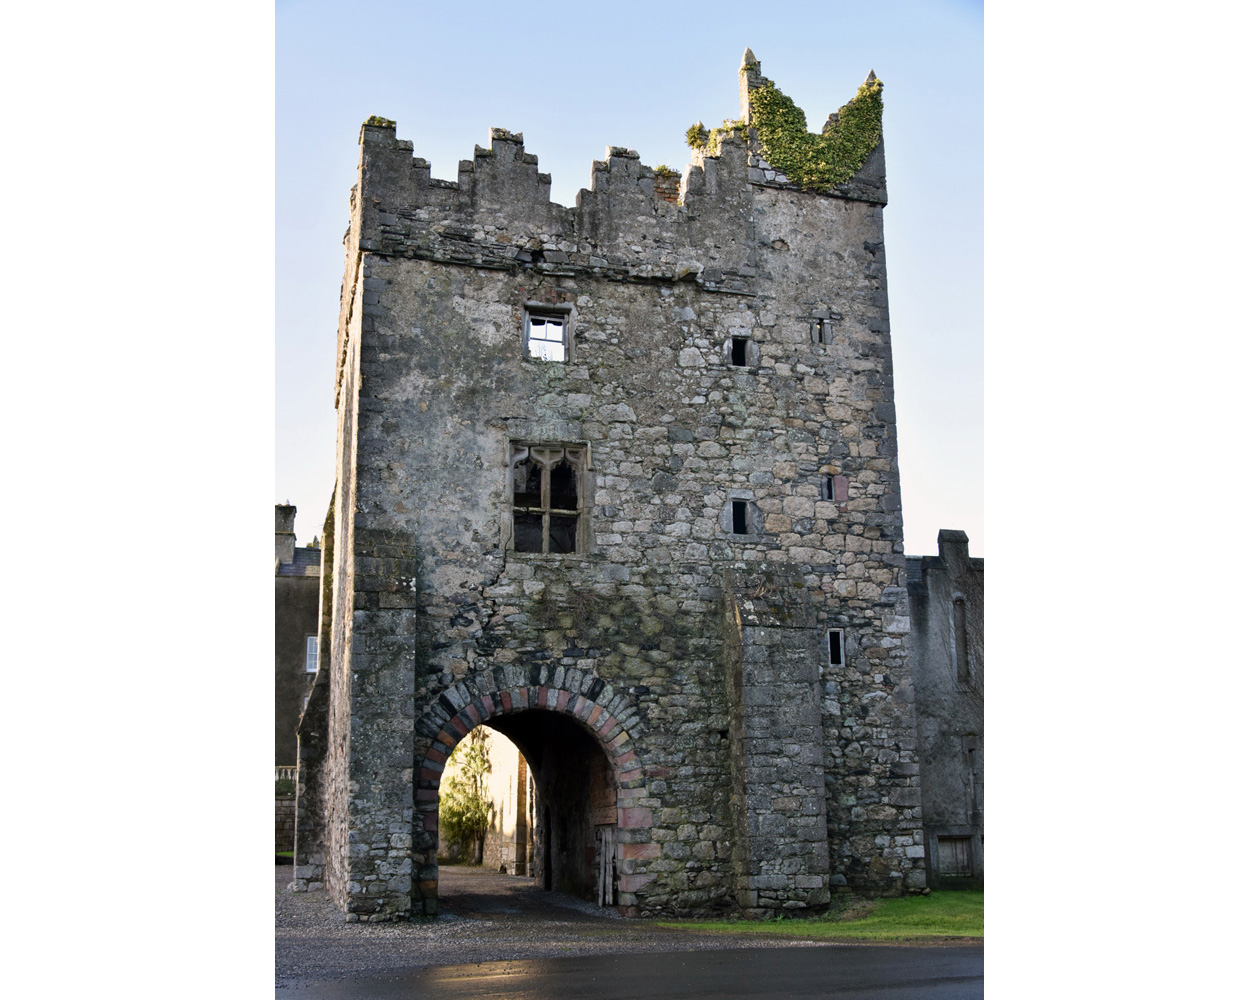 A small section of Howth Castle which dates to medieval times and has been the home of the Gaisford-St. Lawrence family for over 800 years.